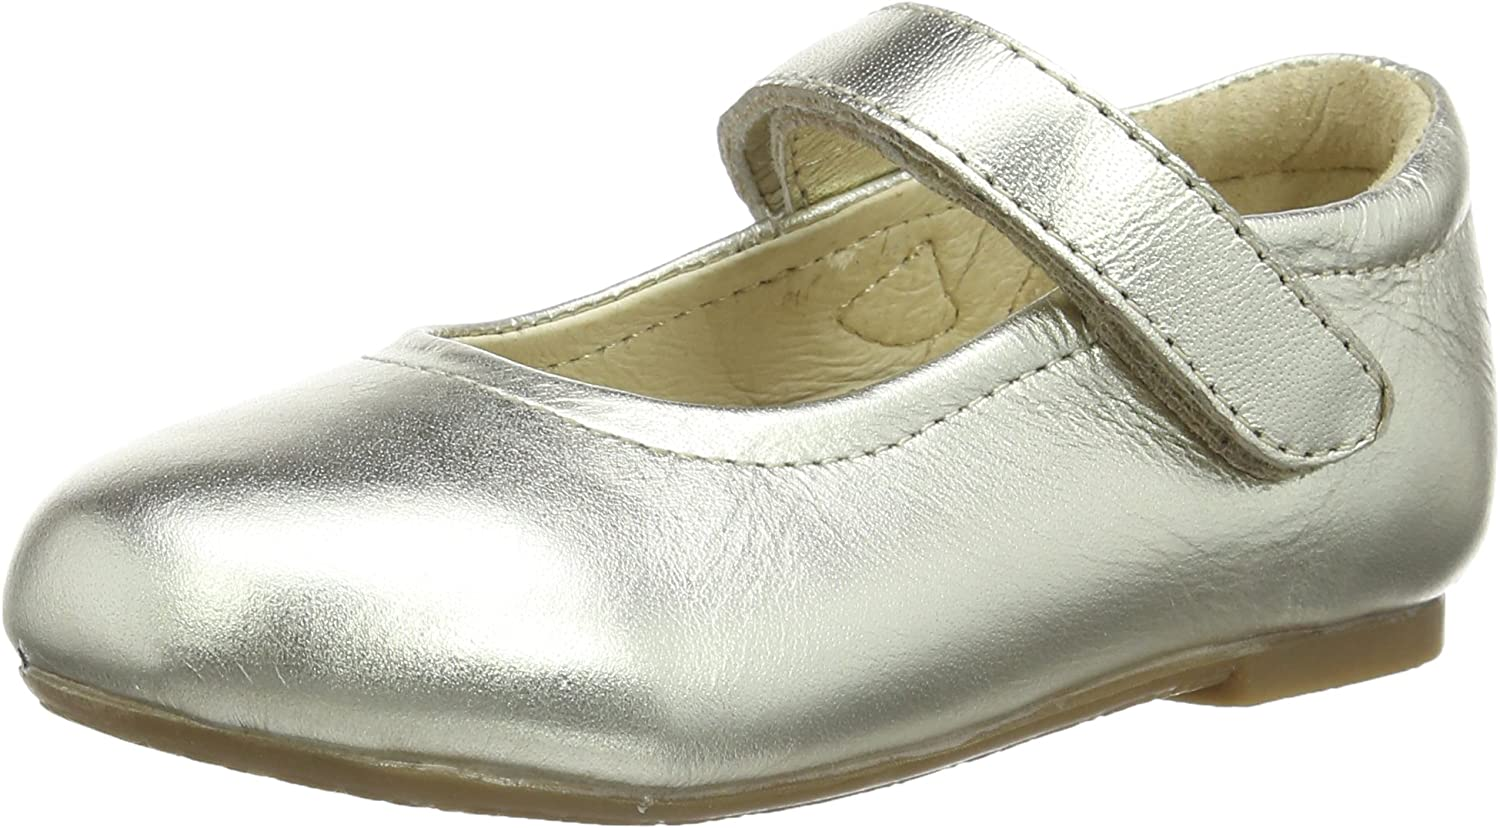 Old Soles Girl's Praline Shoe Leather Hook and Loop Mary Jane Flats